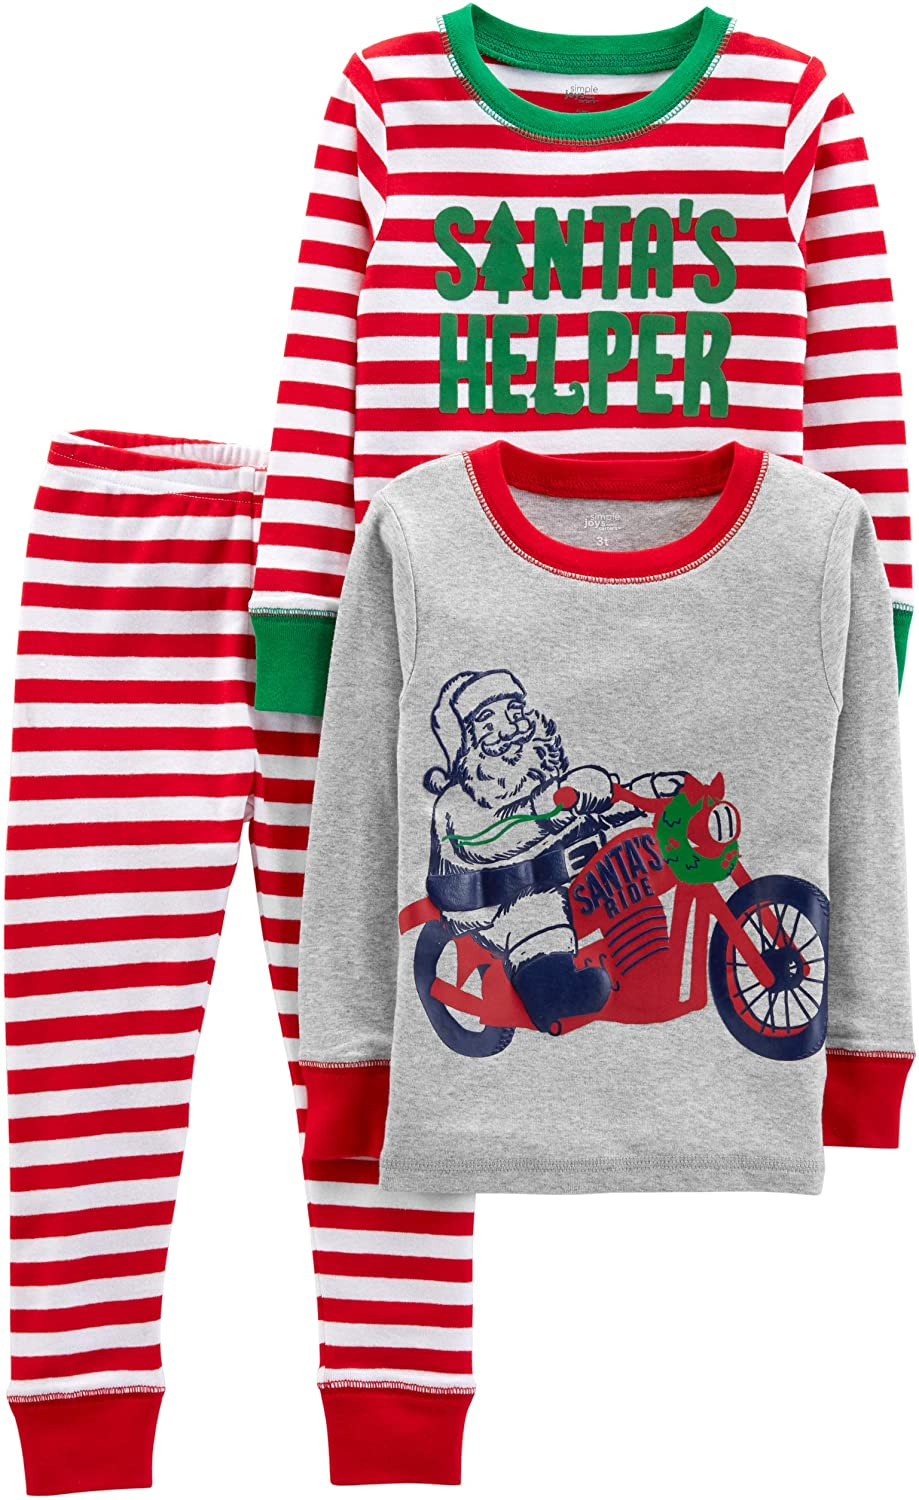 18 Months, Green Carters Carters Baby Unisex Holiday 2-Piece Santa Snug Fit Cotton PJs